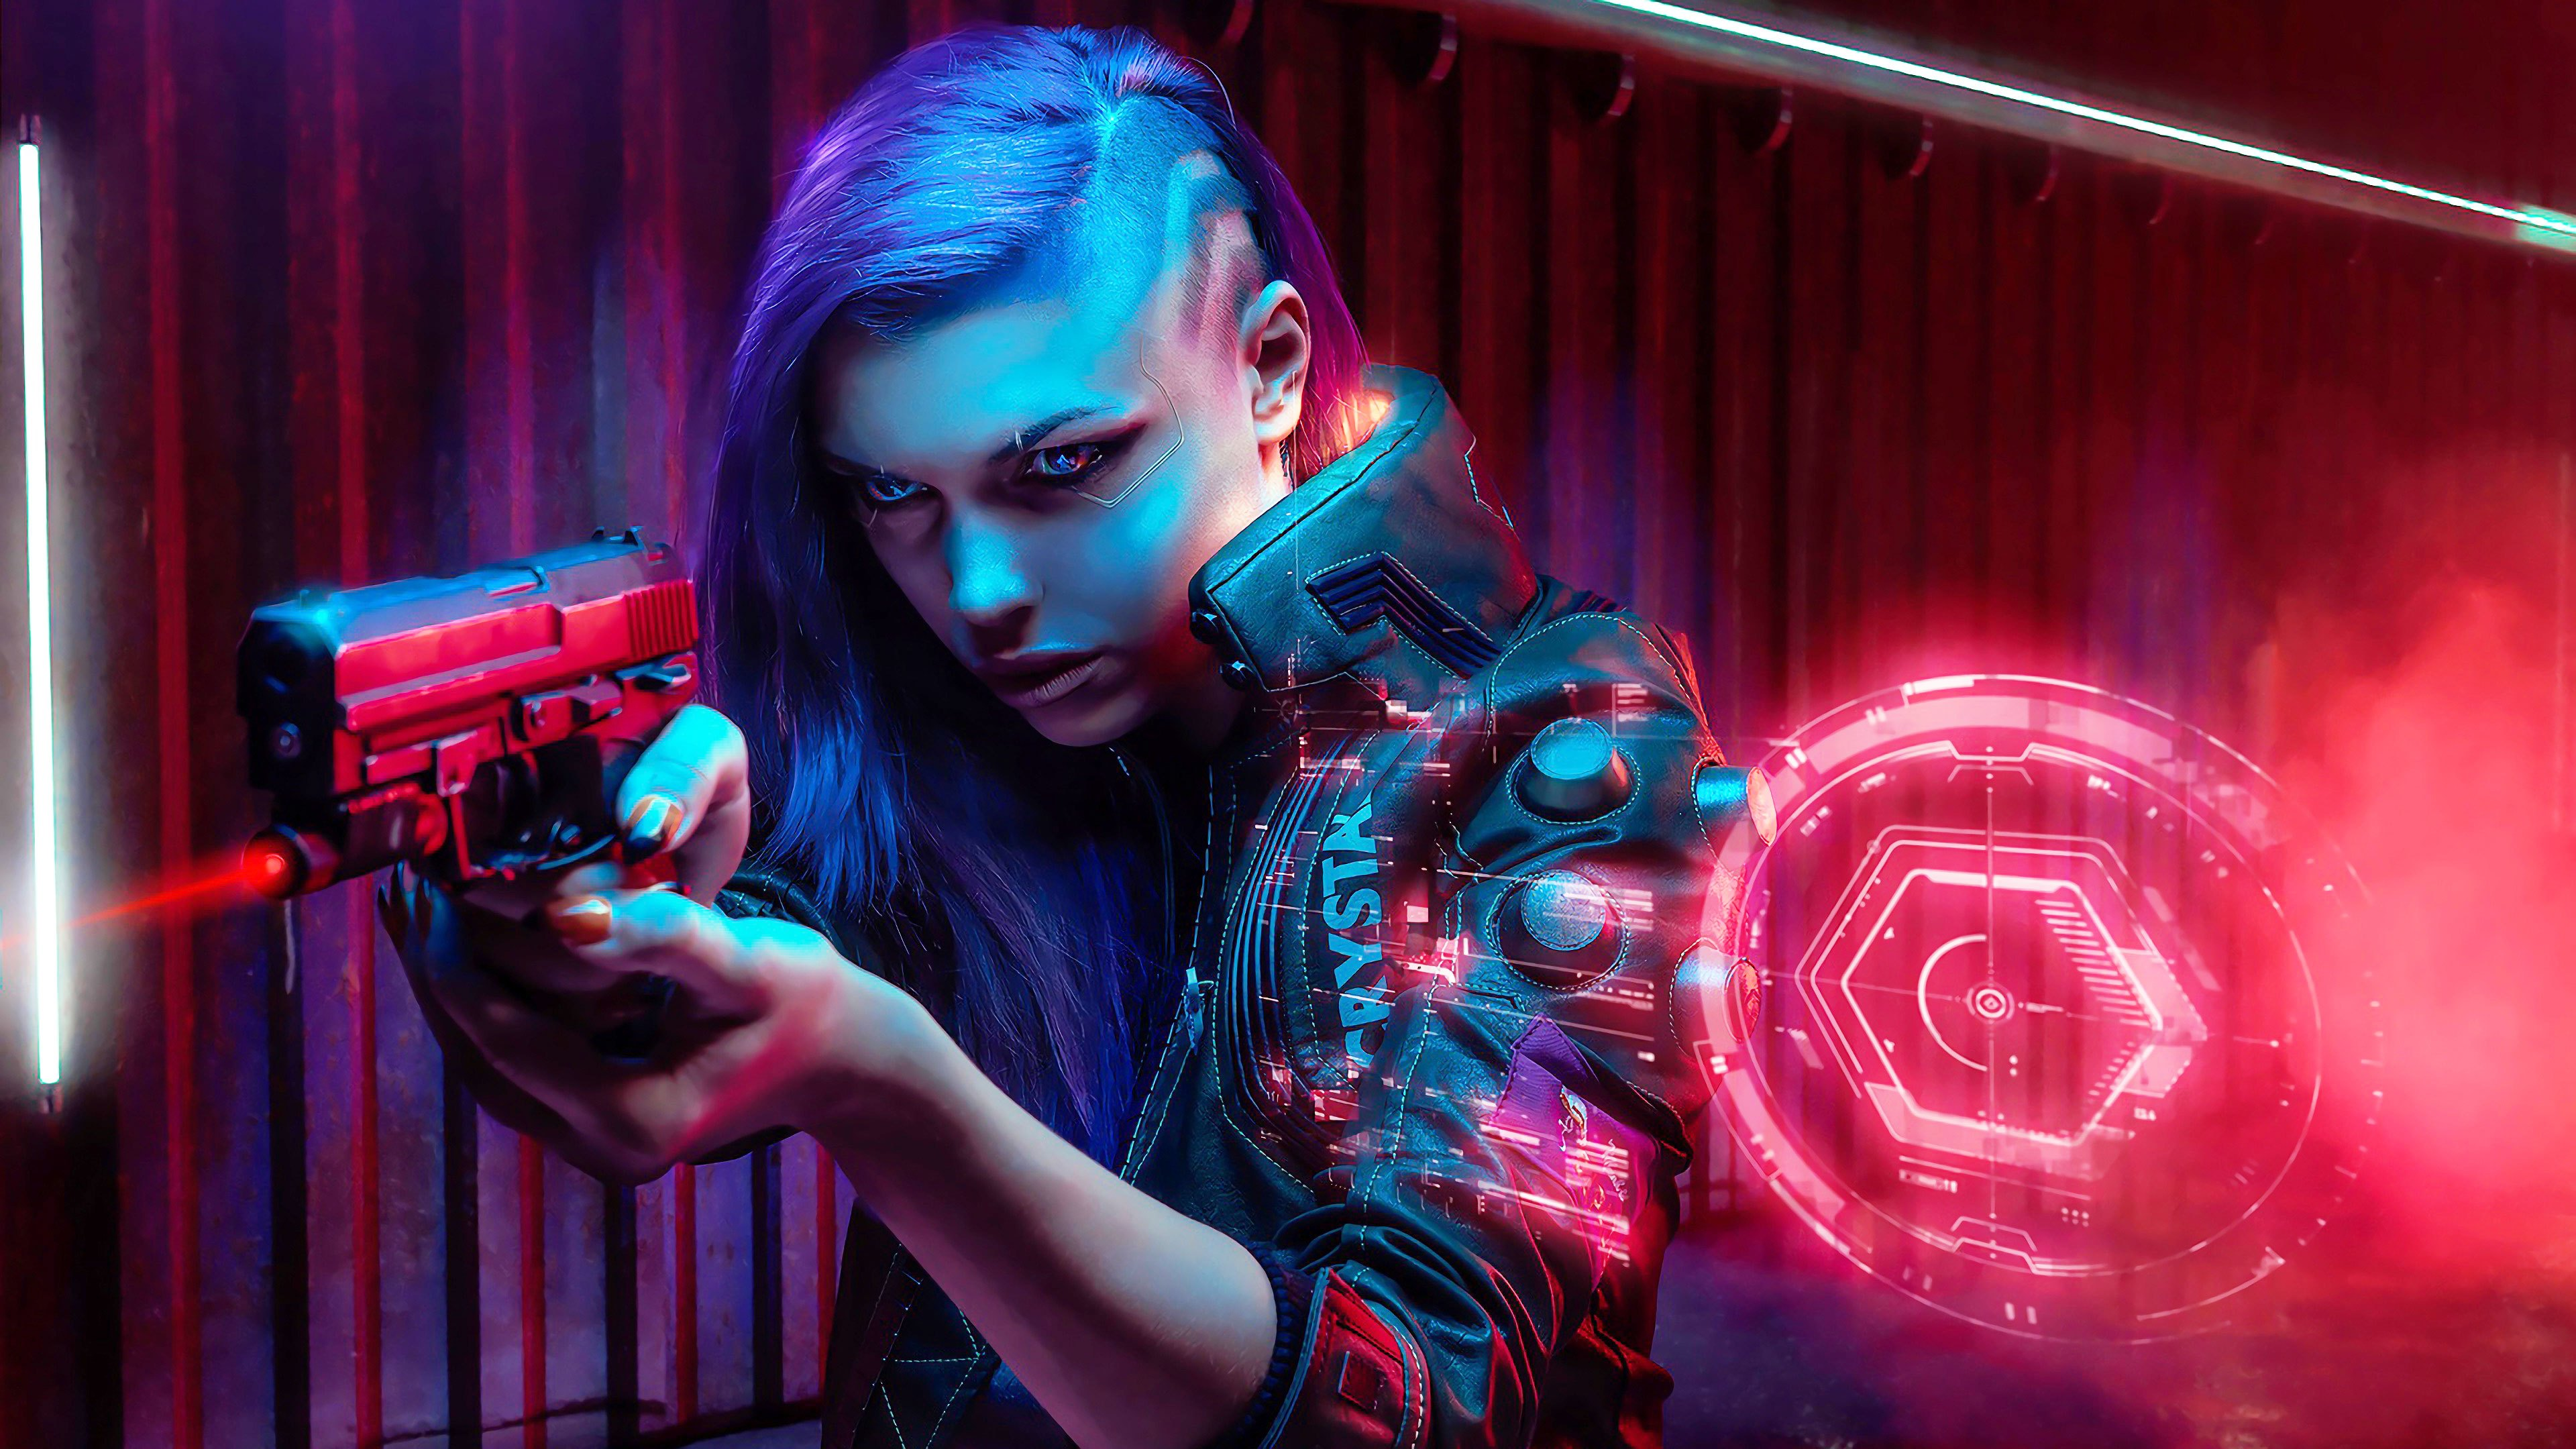 Cyberpunk 2077 4k 2020 Hd Games 4k Wallpapers Images Backgrounds Photos And Pictures